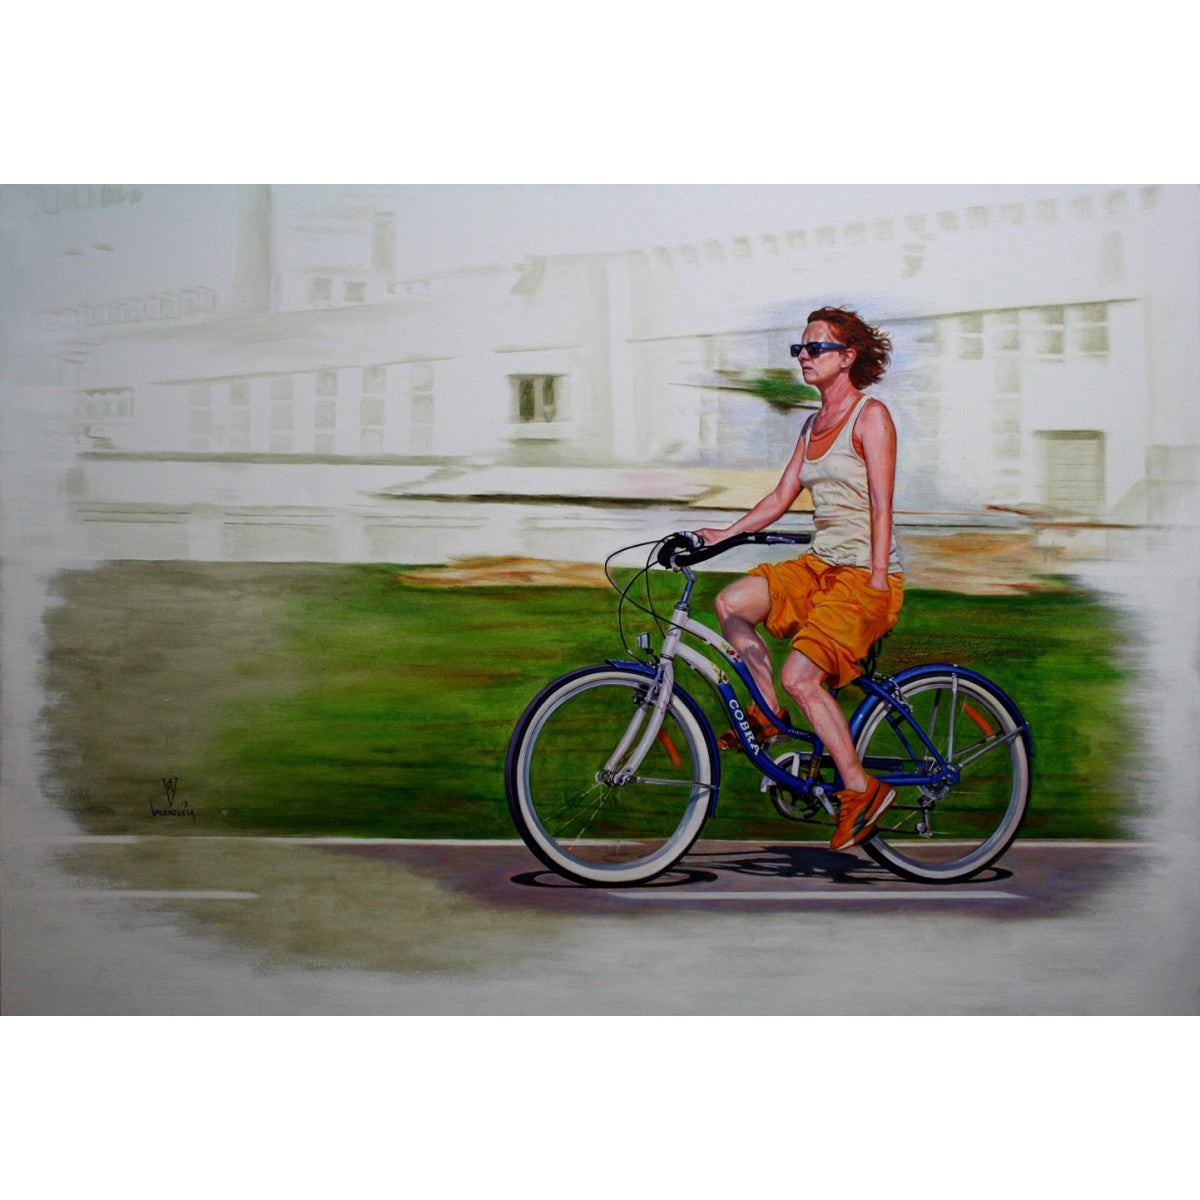 Woman Riding on Bicycle by Gustavo Valenzuela